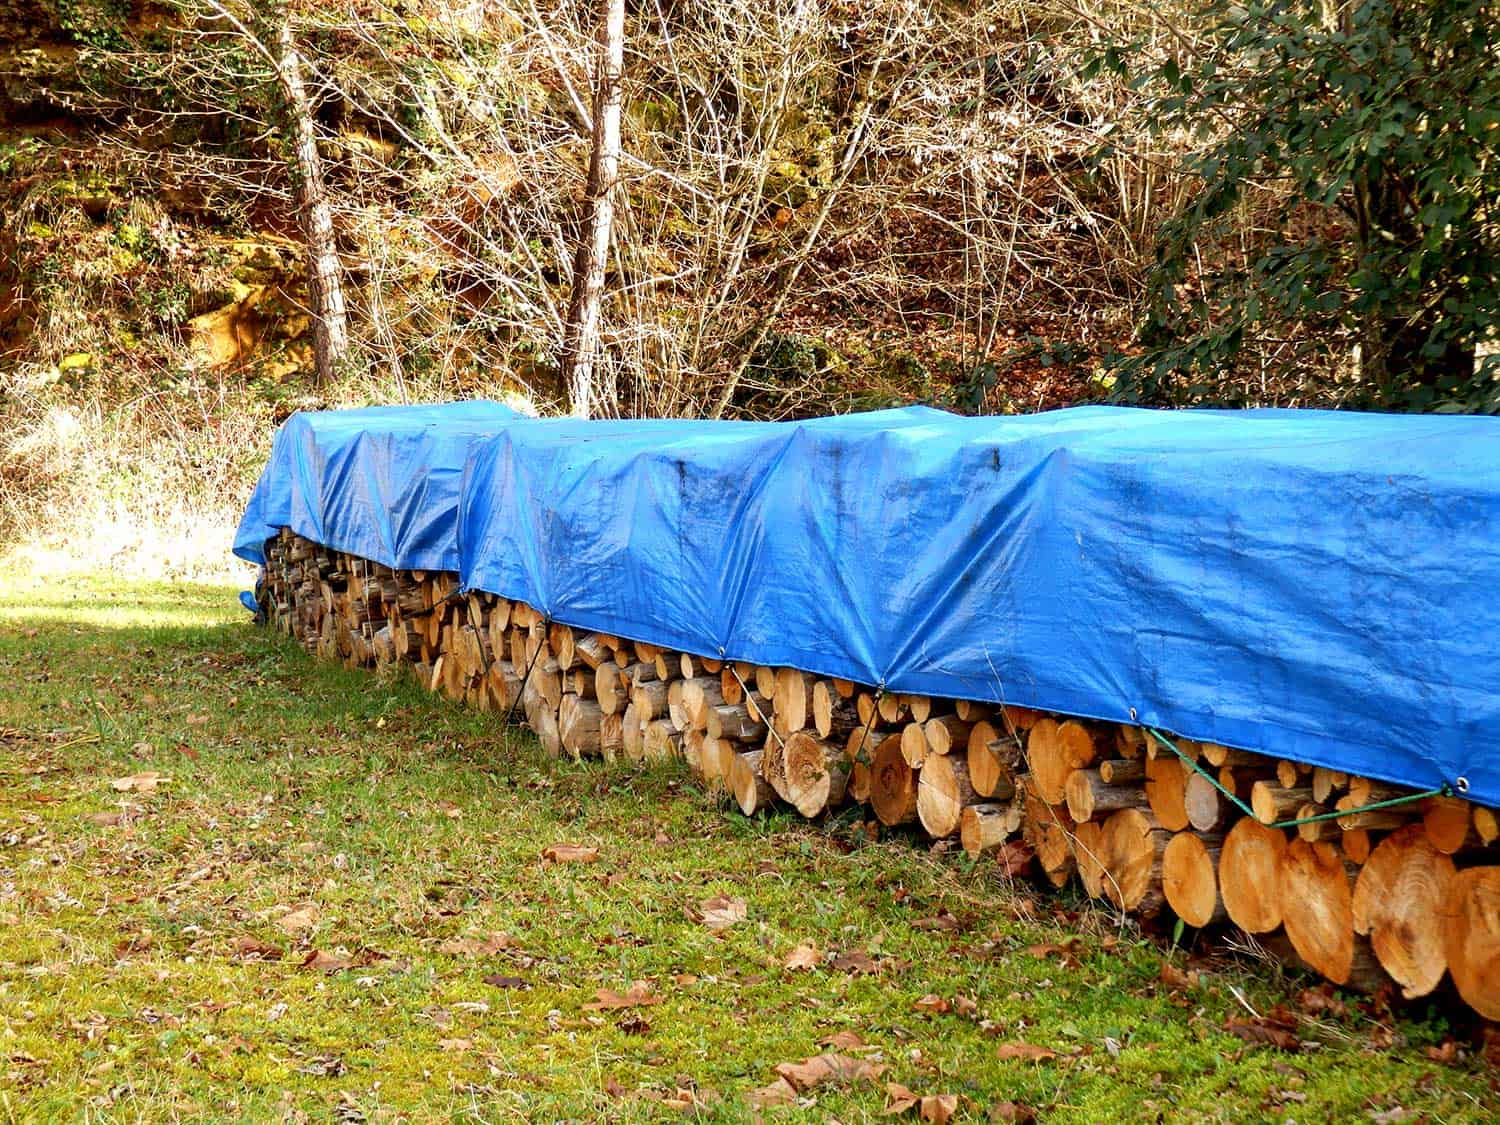 Log pile in the woods covered with blue tarp